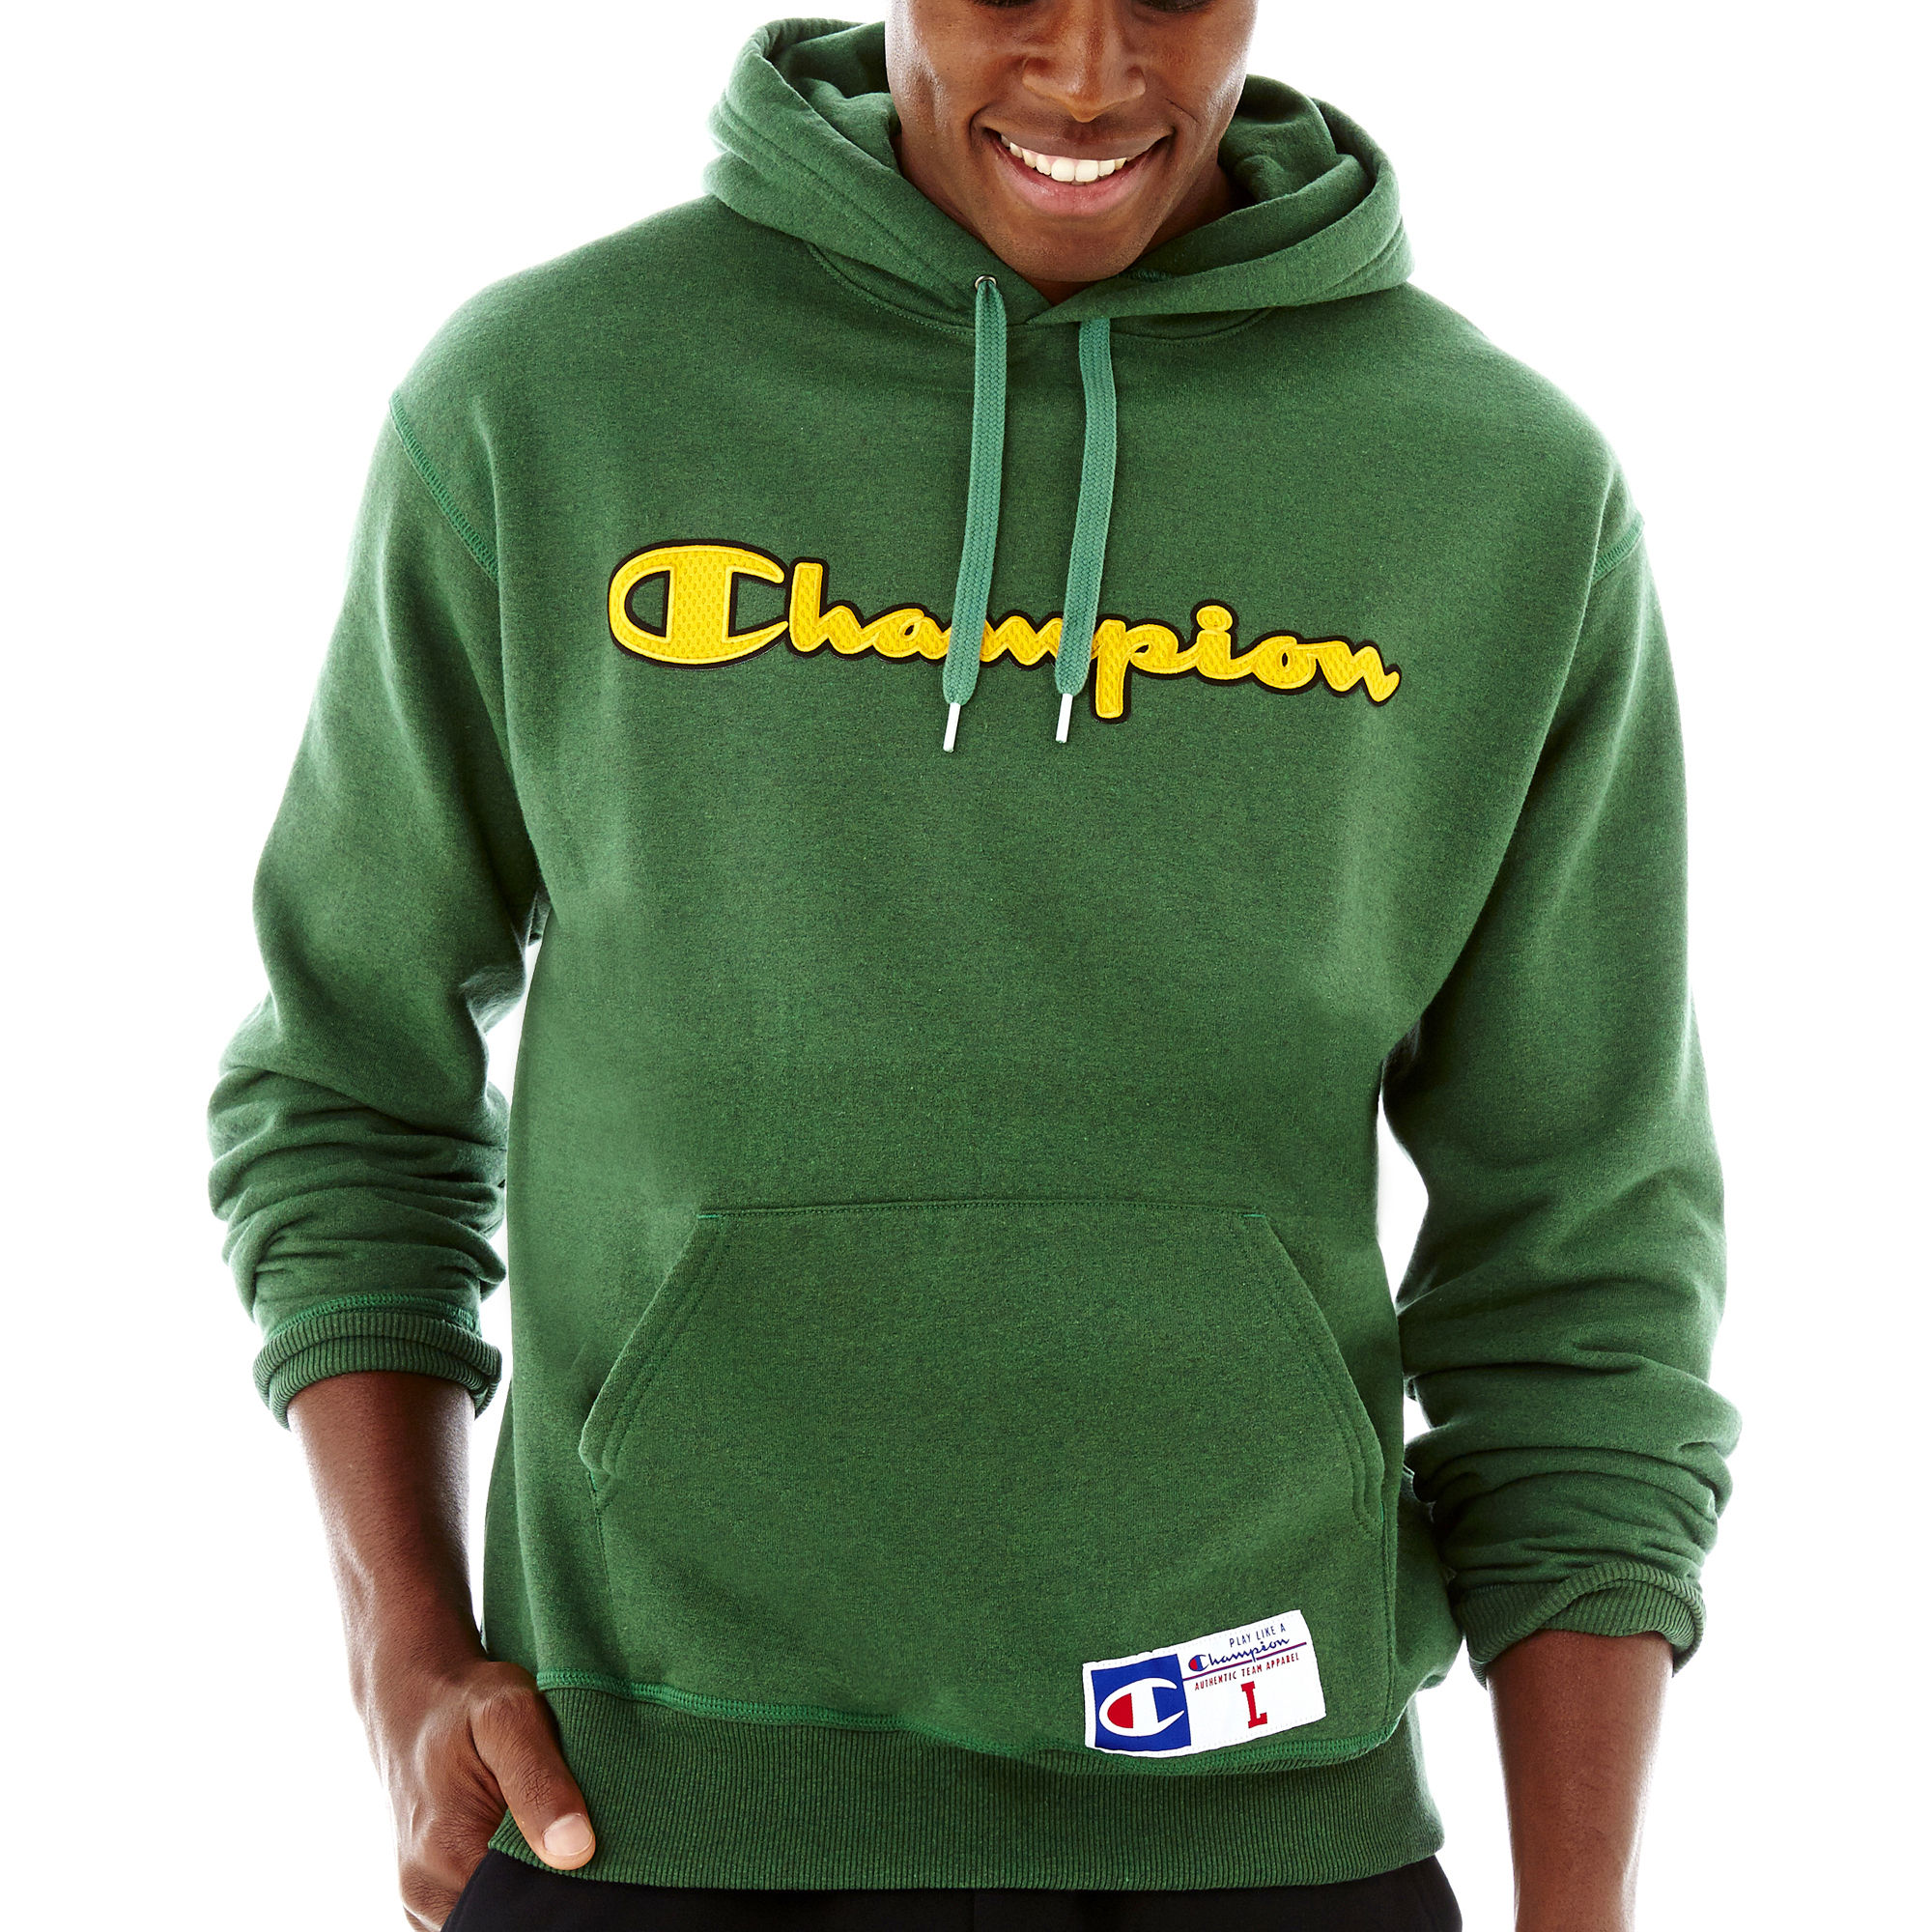 UPC 078715311742 - Champion Graphic Fleece Pullover Hoodie ...